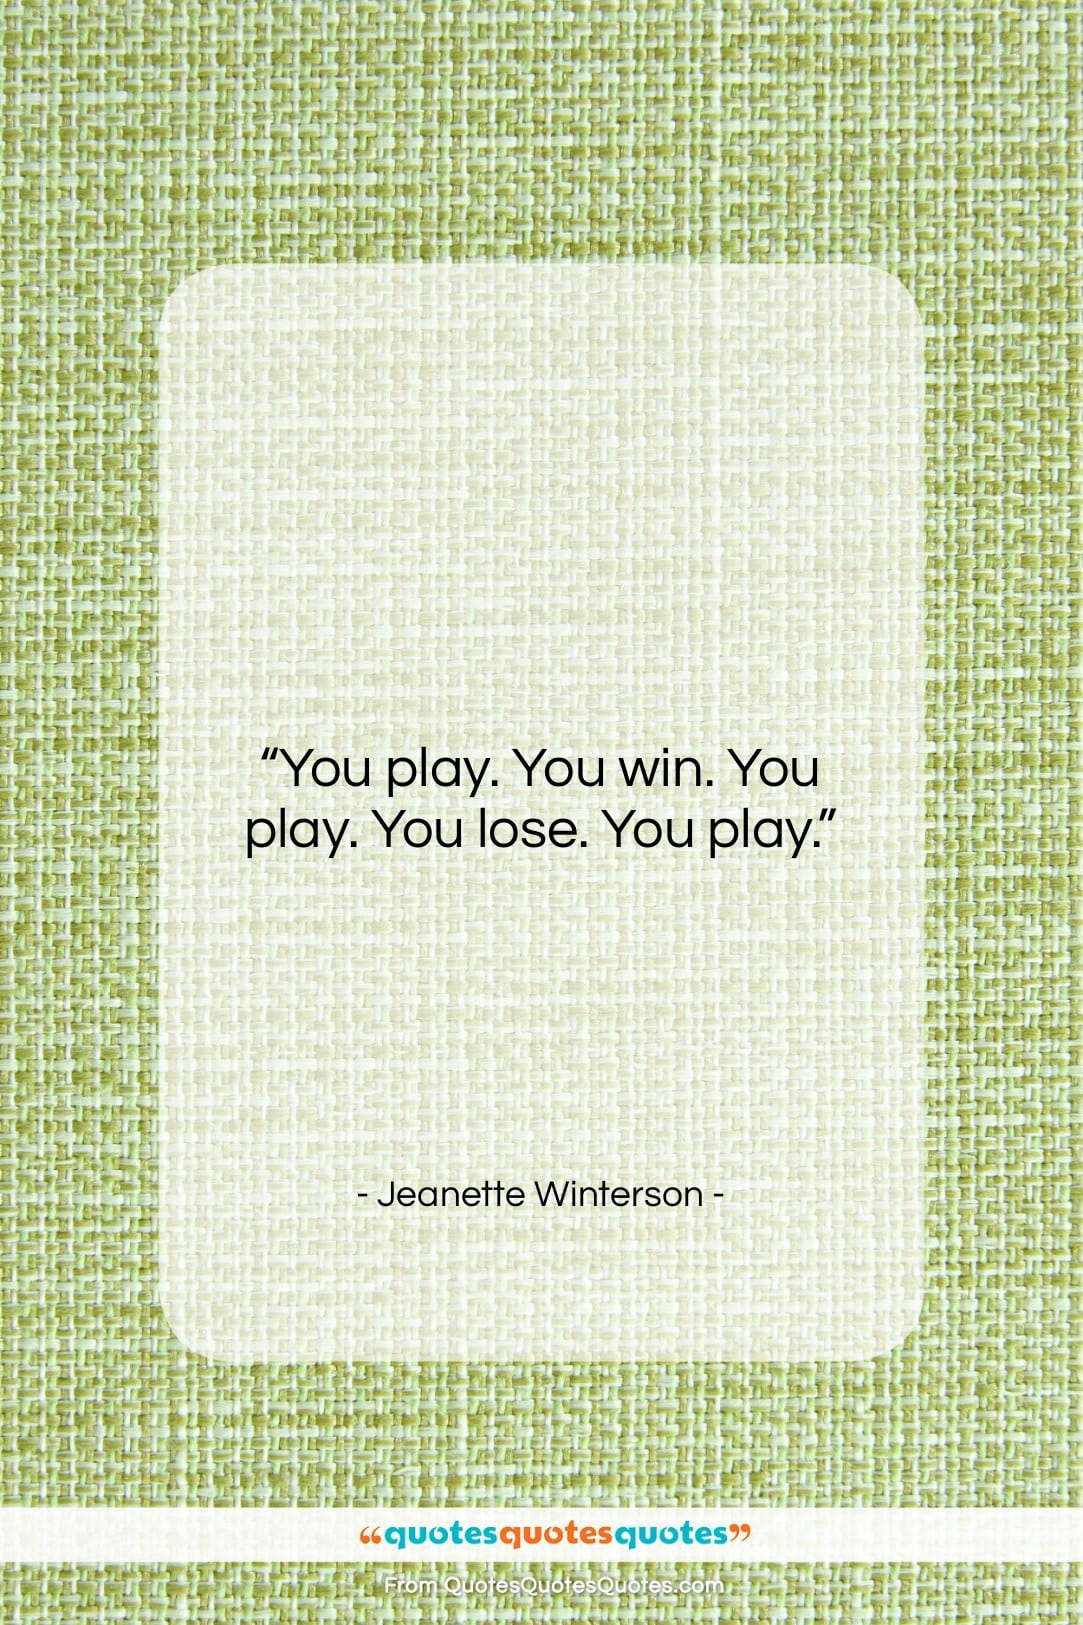 """Jeanette Winterson quote: """"You play. You win. You play. You…""""- at QuotesQuotesQuotes.com"""